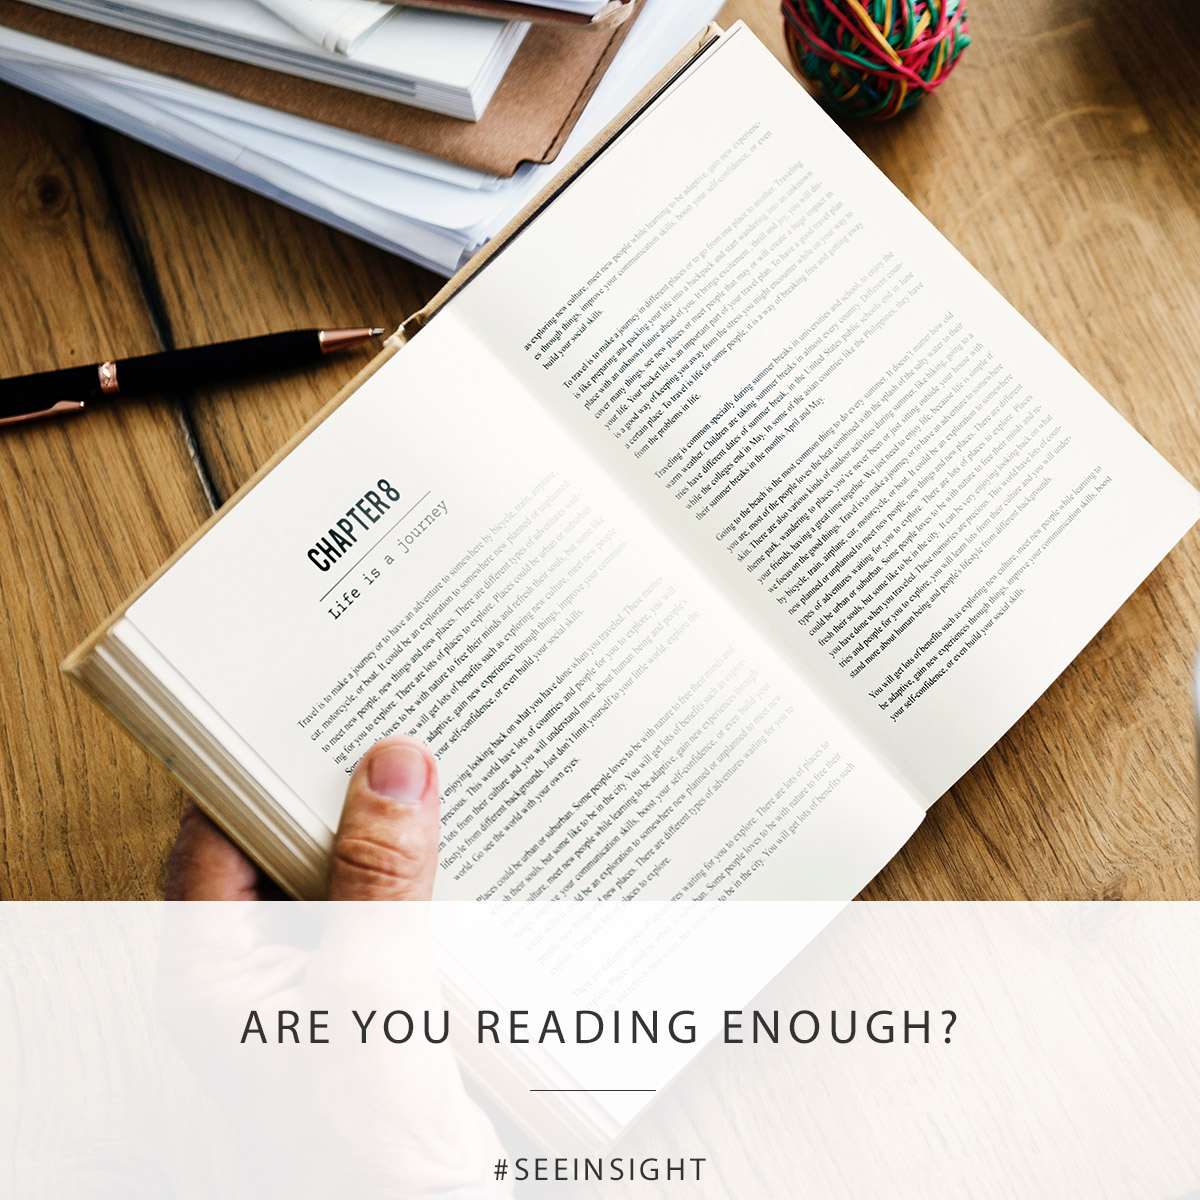 Are you reading enough?